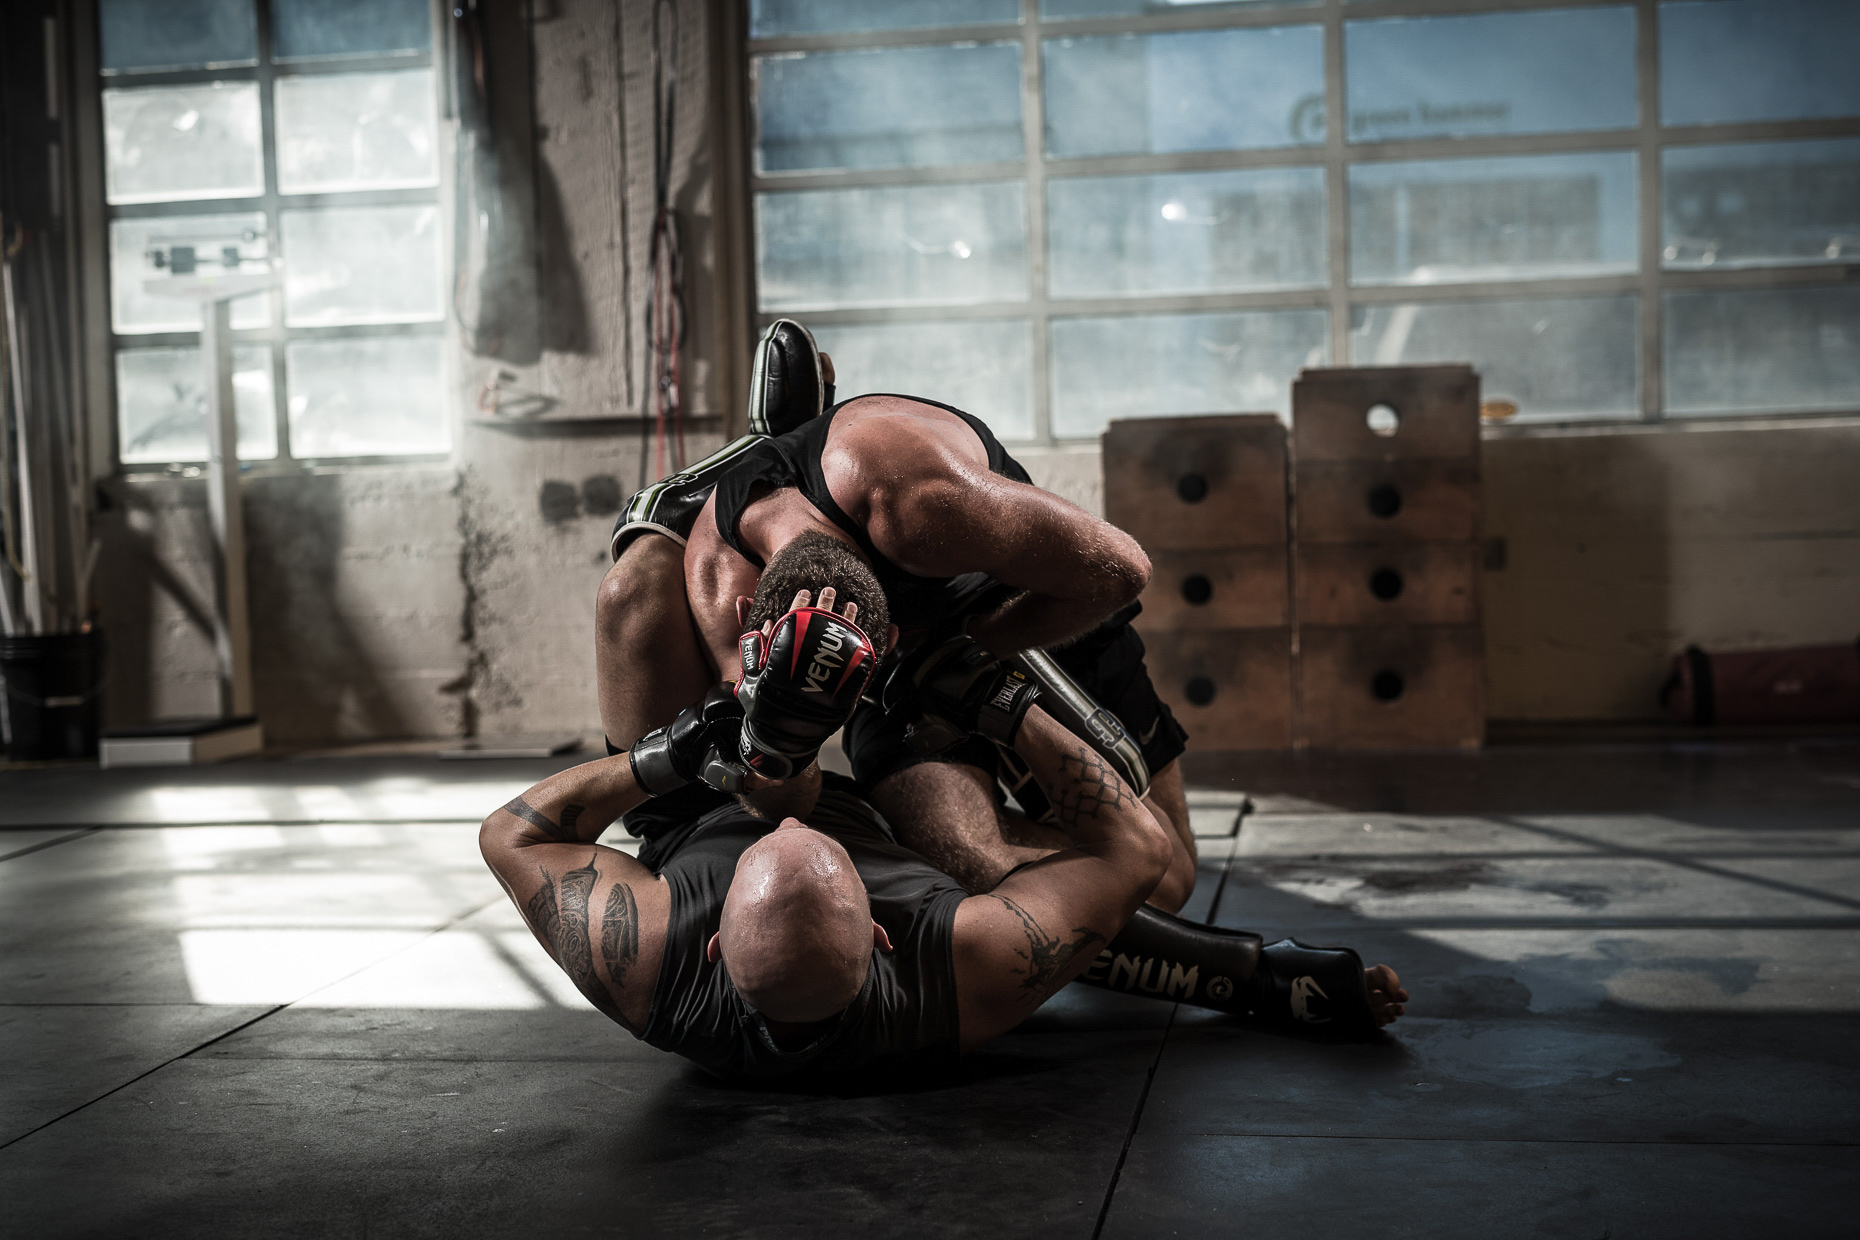 MMA athletes Jose Rogriguez and Will Hatcher  training in a crossfit gym by. The fighters grapple on the floor during training in a crossfit gym by Andy Batt